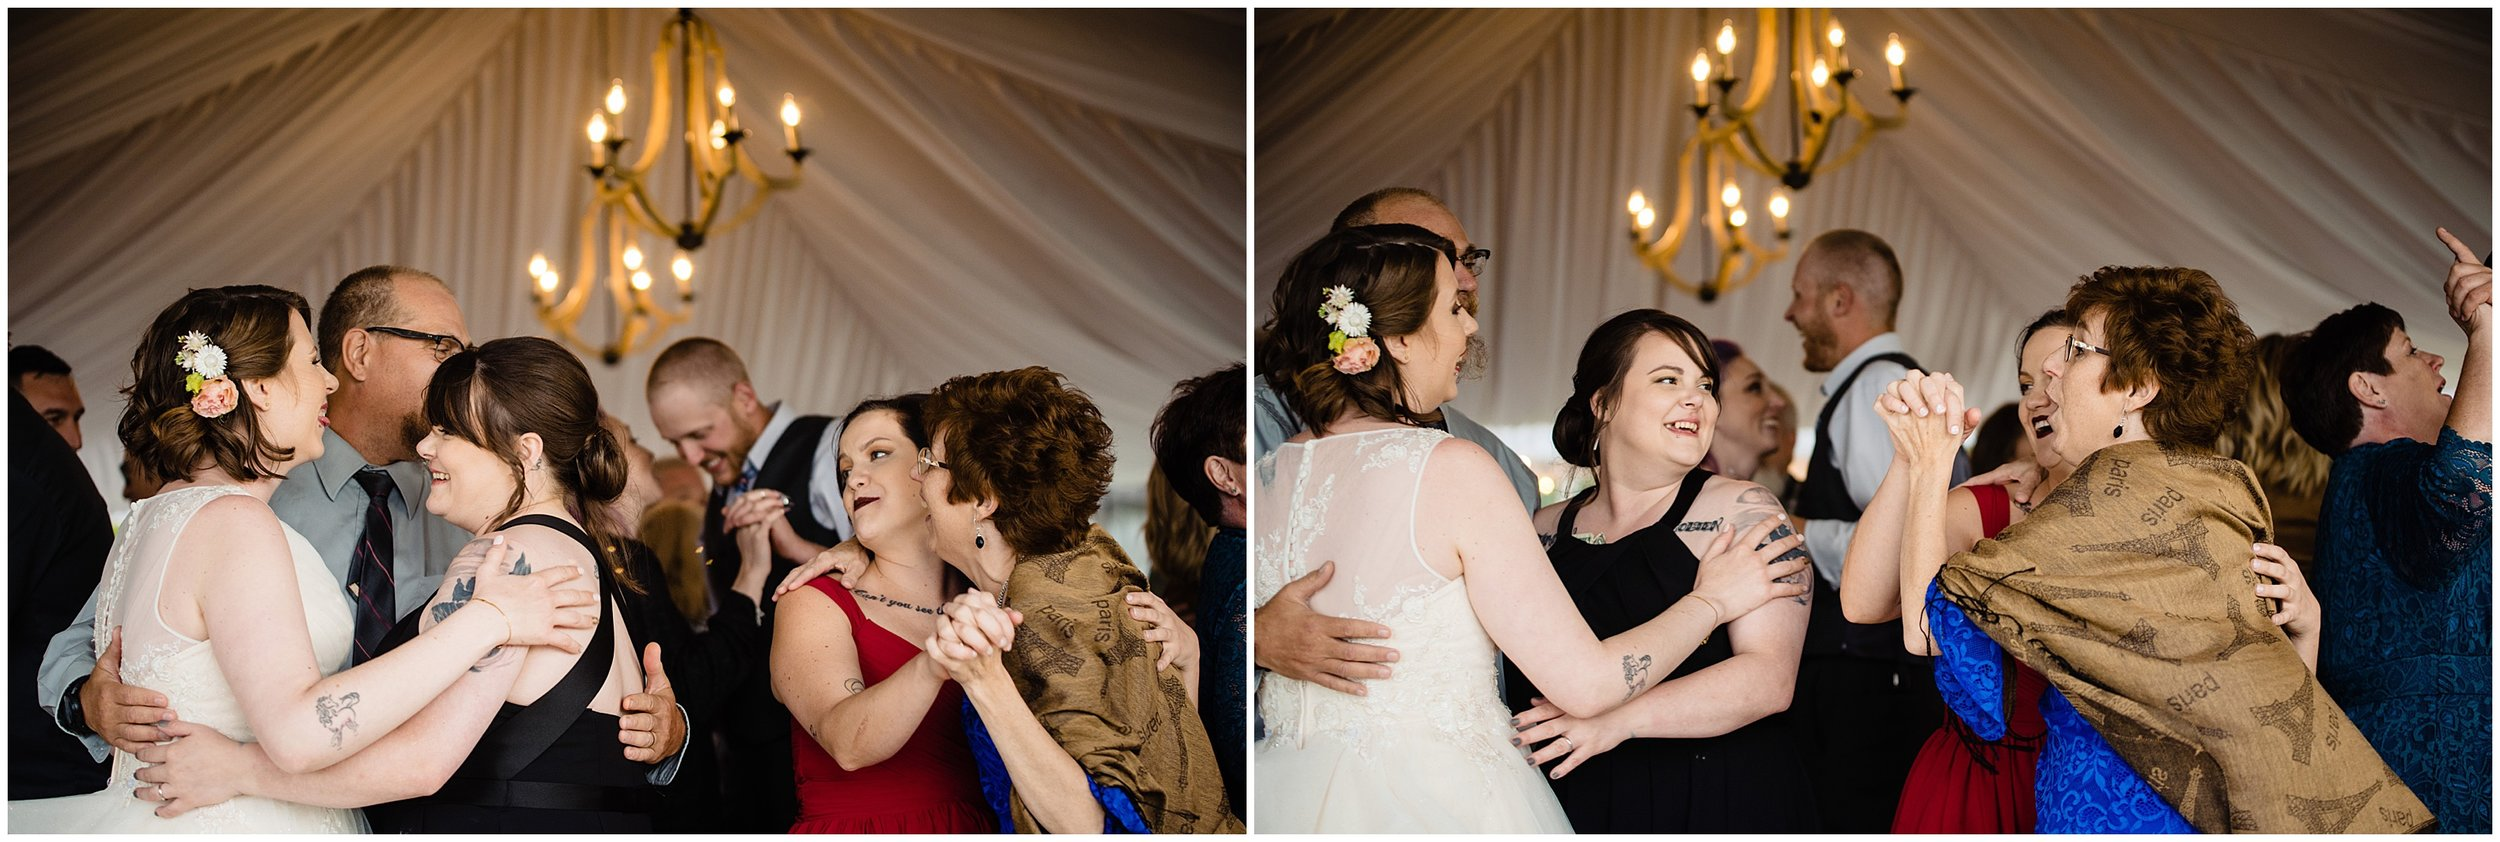 lindseyjanephoto_wedding0120.jpg